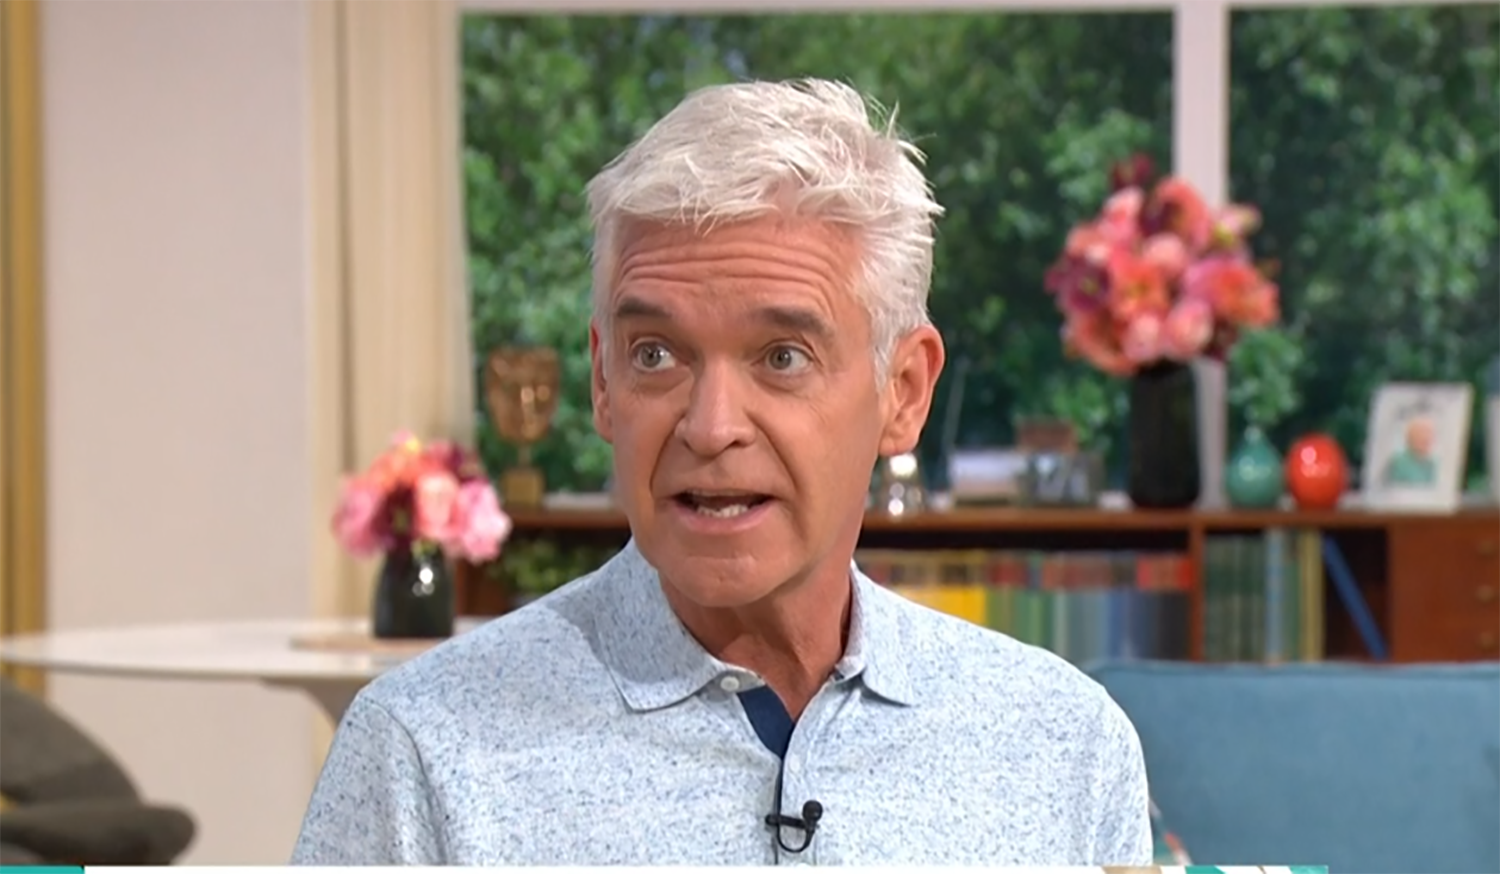 Phillip Schofield savages This Morning viewer for complaining about show 'rushing' segments